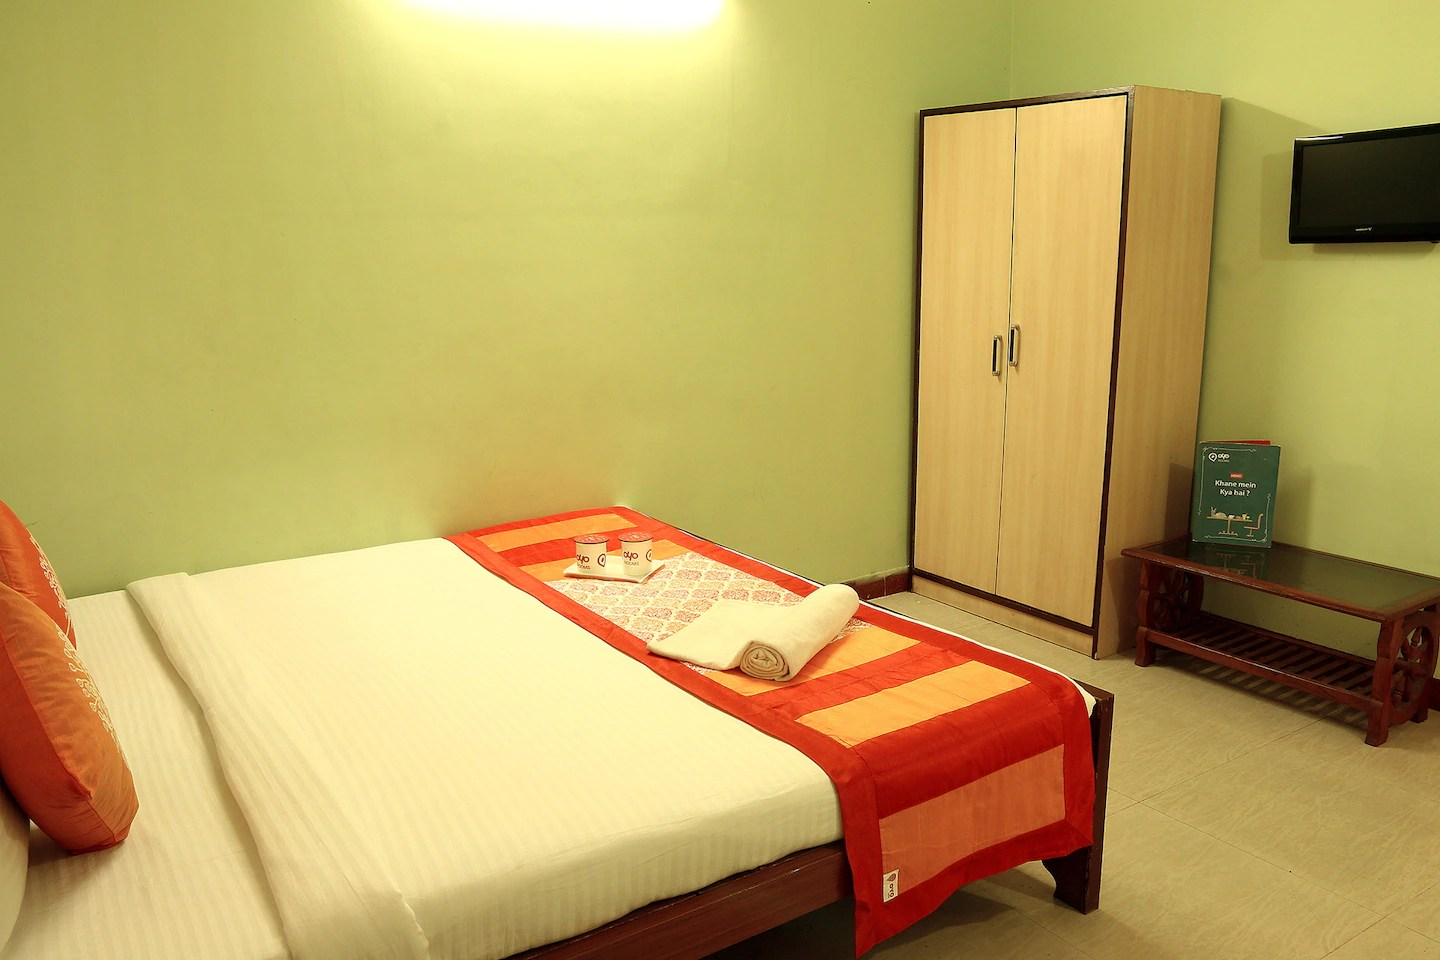 Promo 78 Off Oyo Rooms Bazar Mai Sewan Near Golden Temple